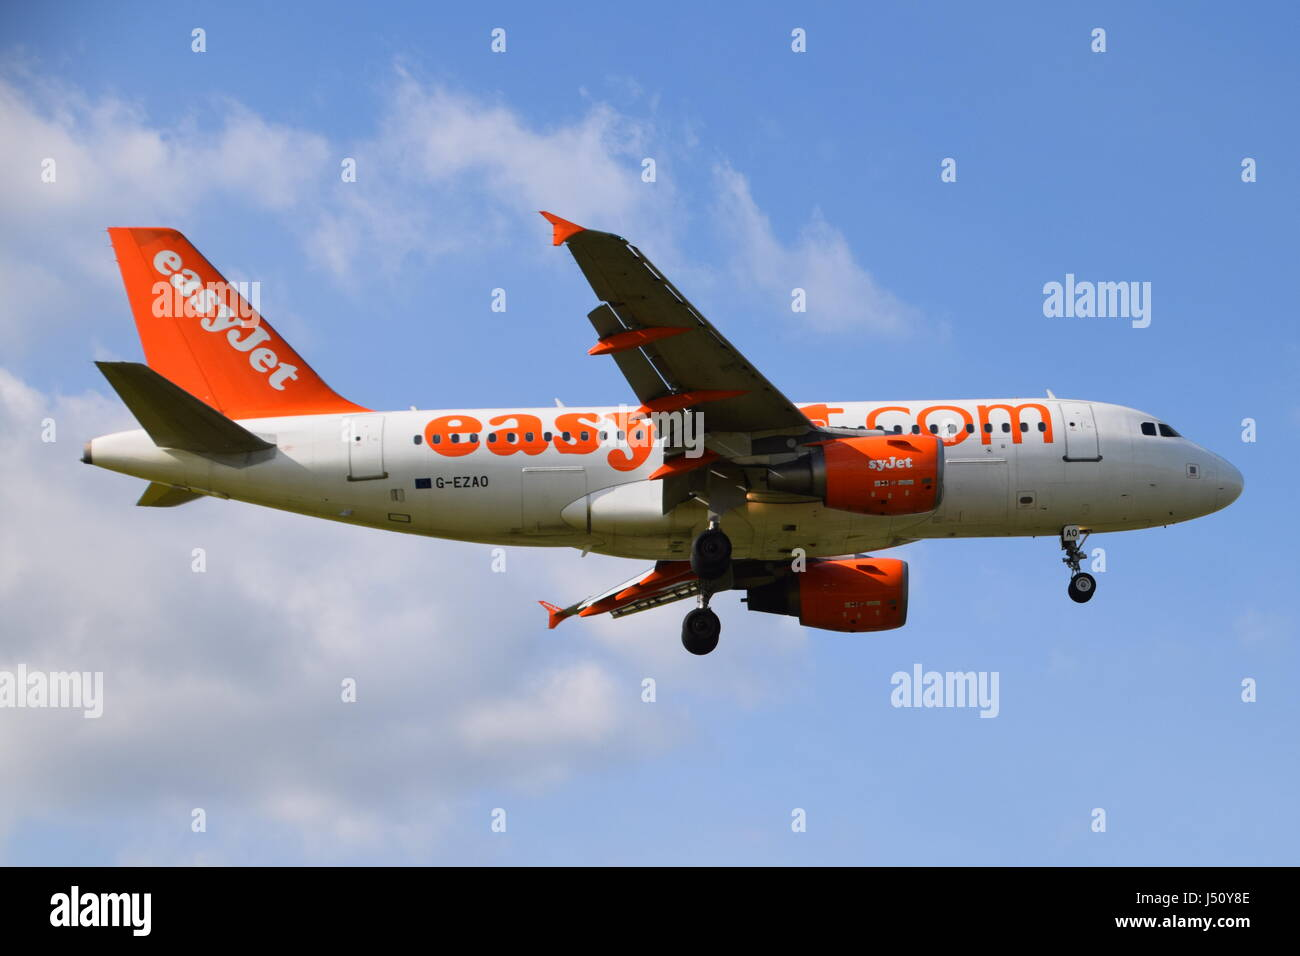 G-EZAO easyJet Airbus A319-100 - cn 2769 on final approach to London Gatwick airport LGW - Stock Image